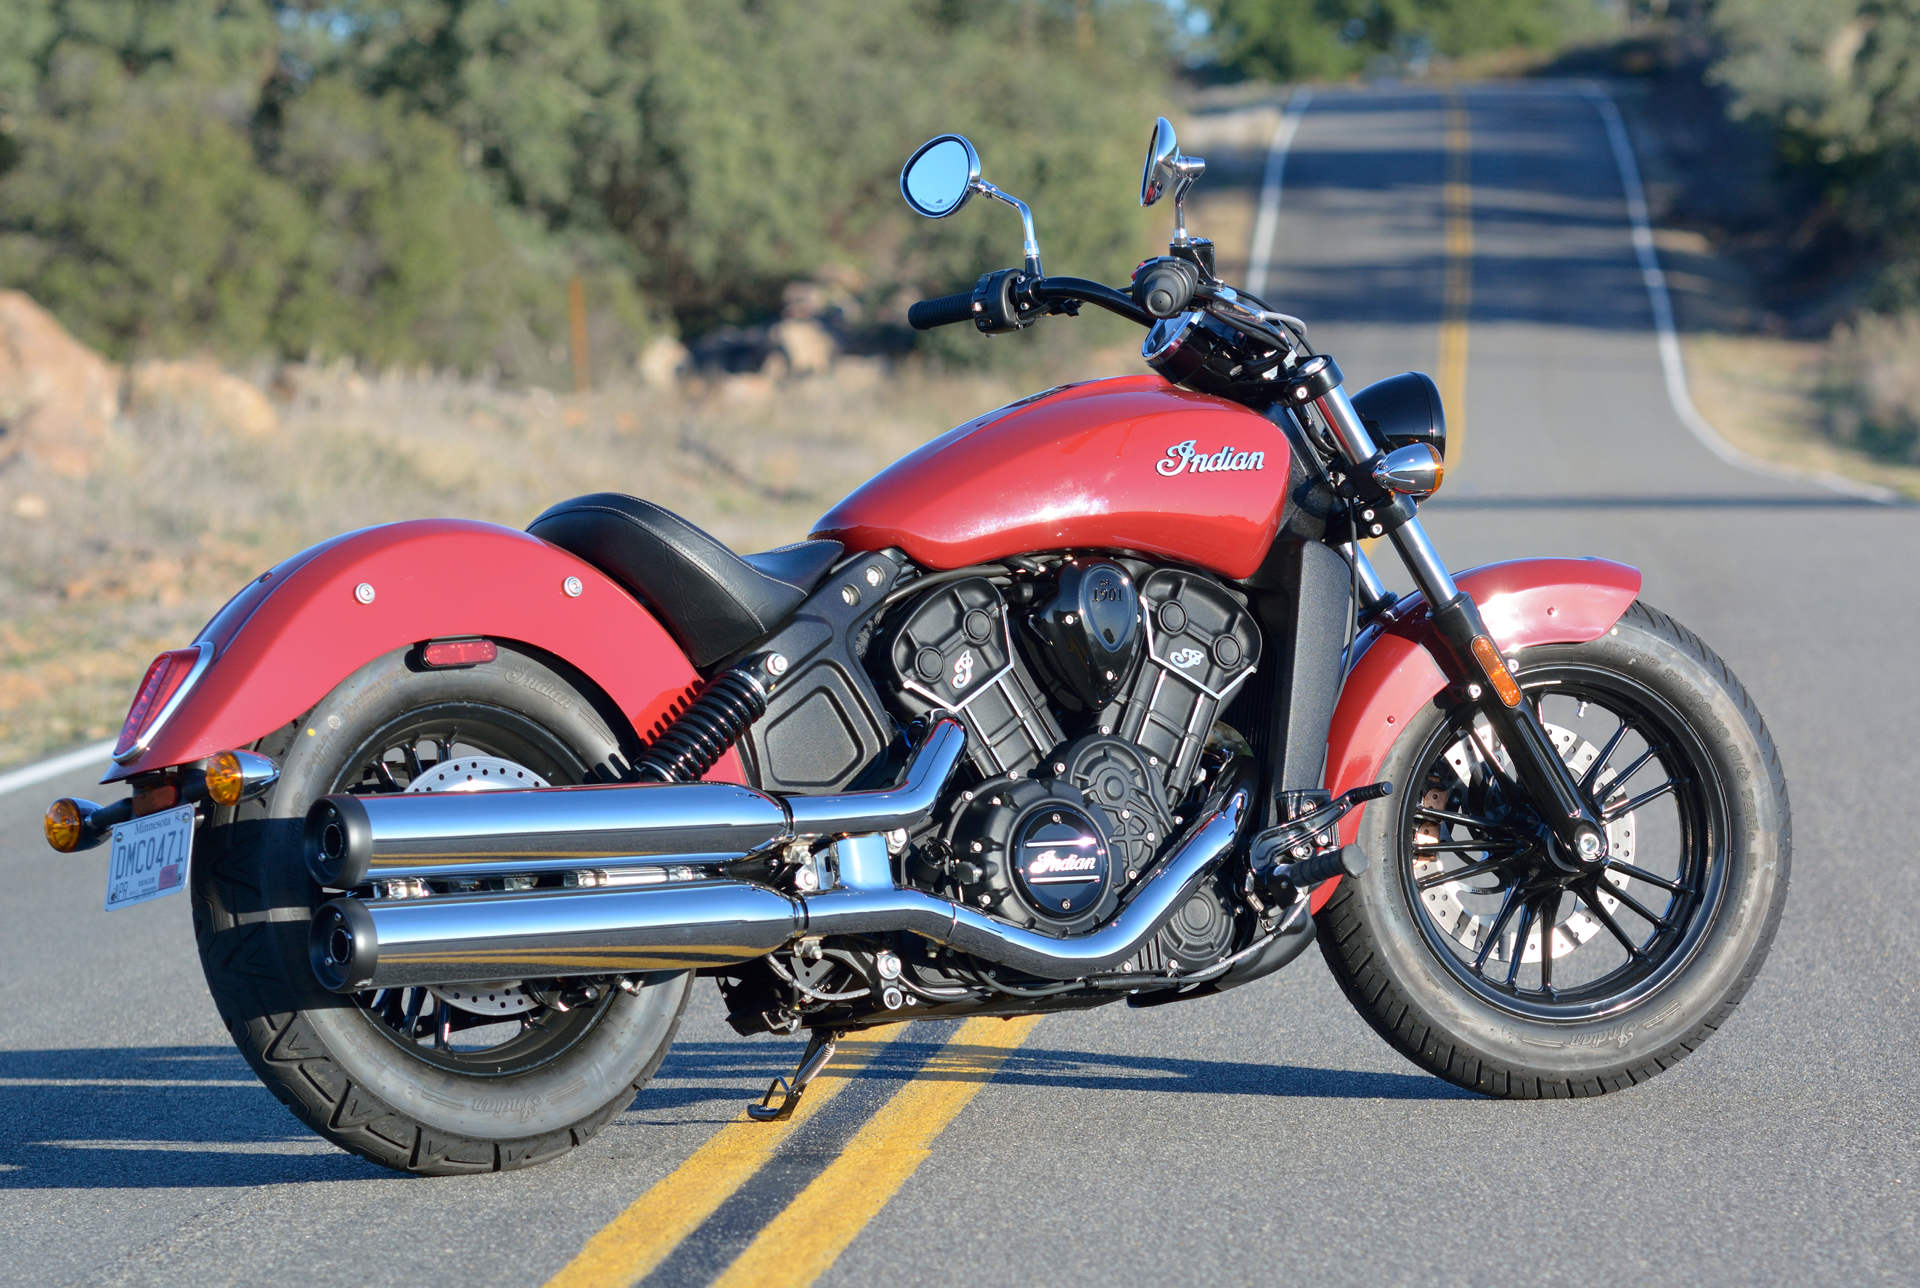 2016 Indian Scout Sixty: MD Ride Review, Part 1